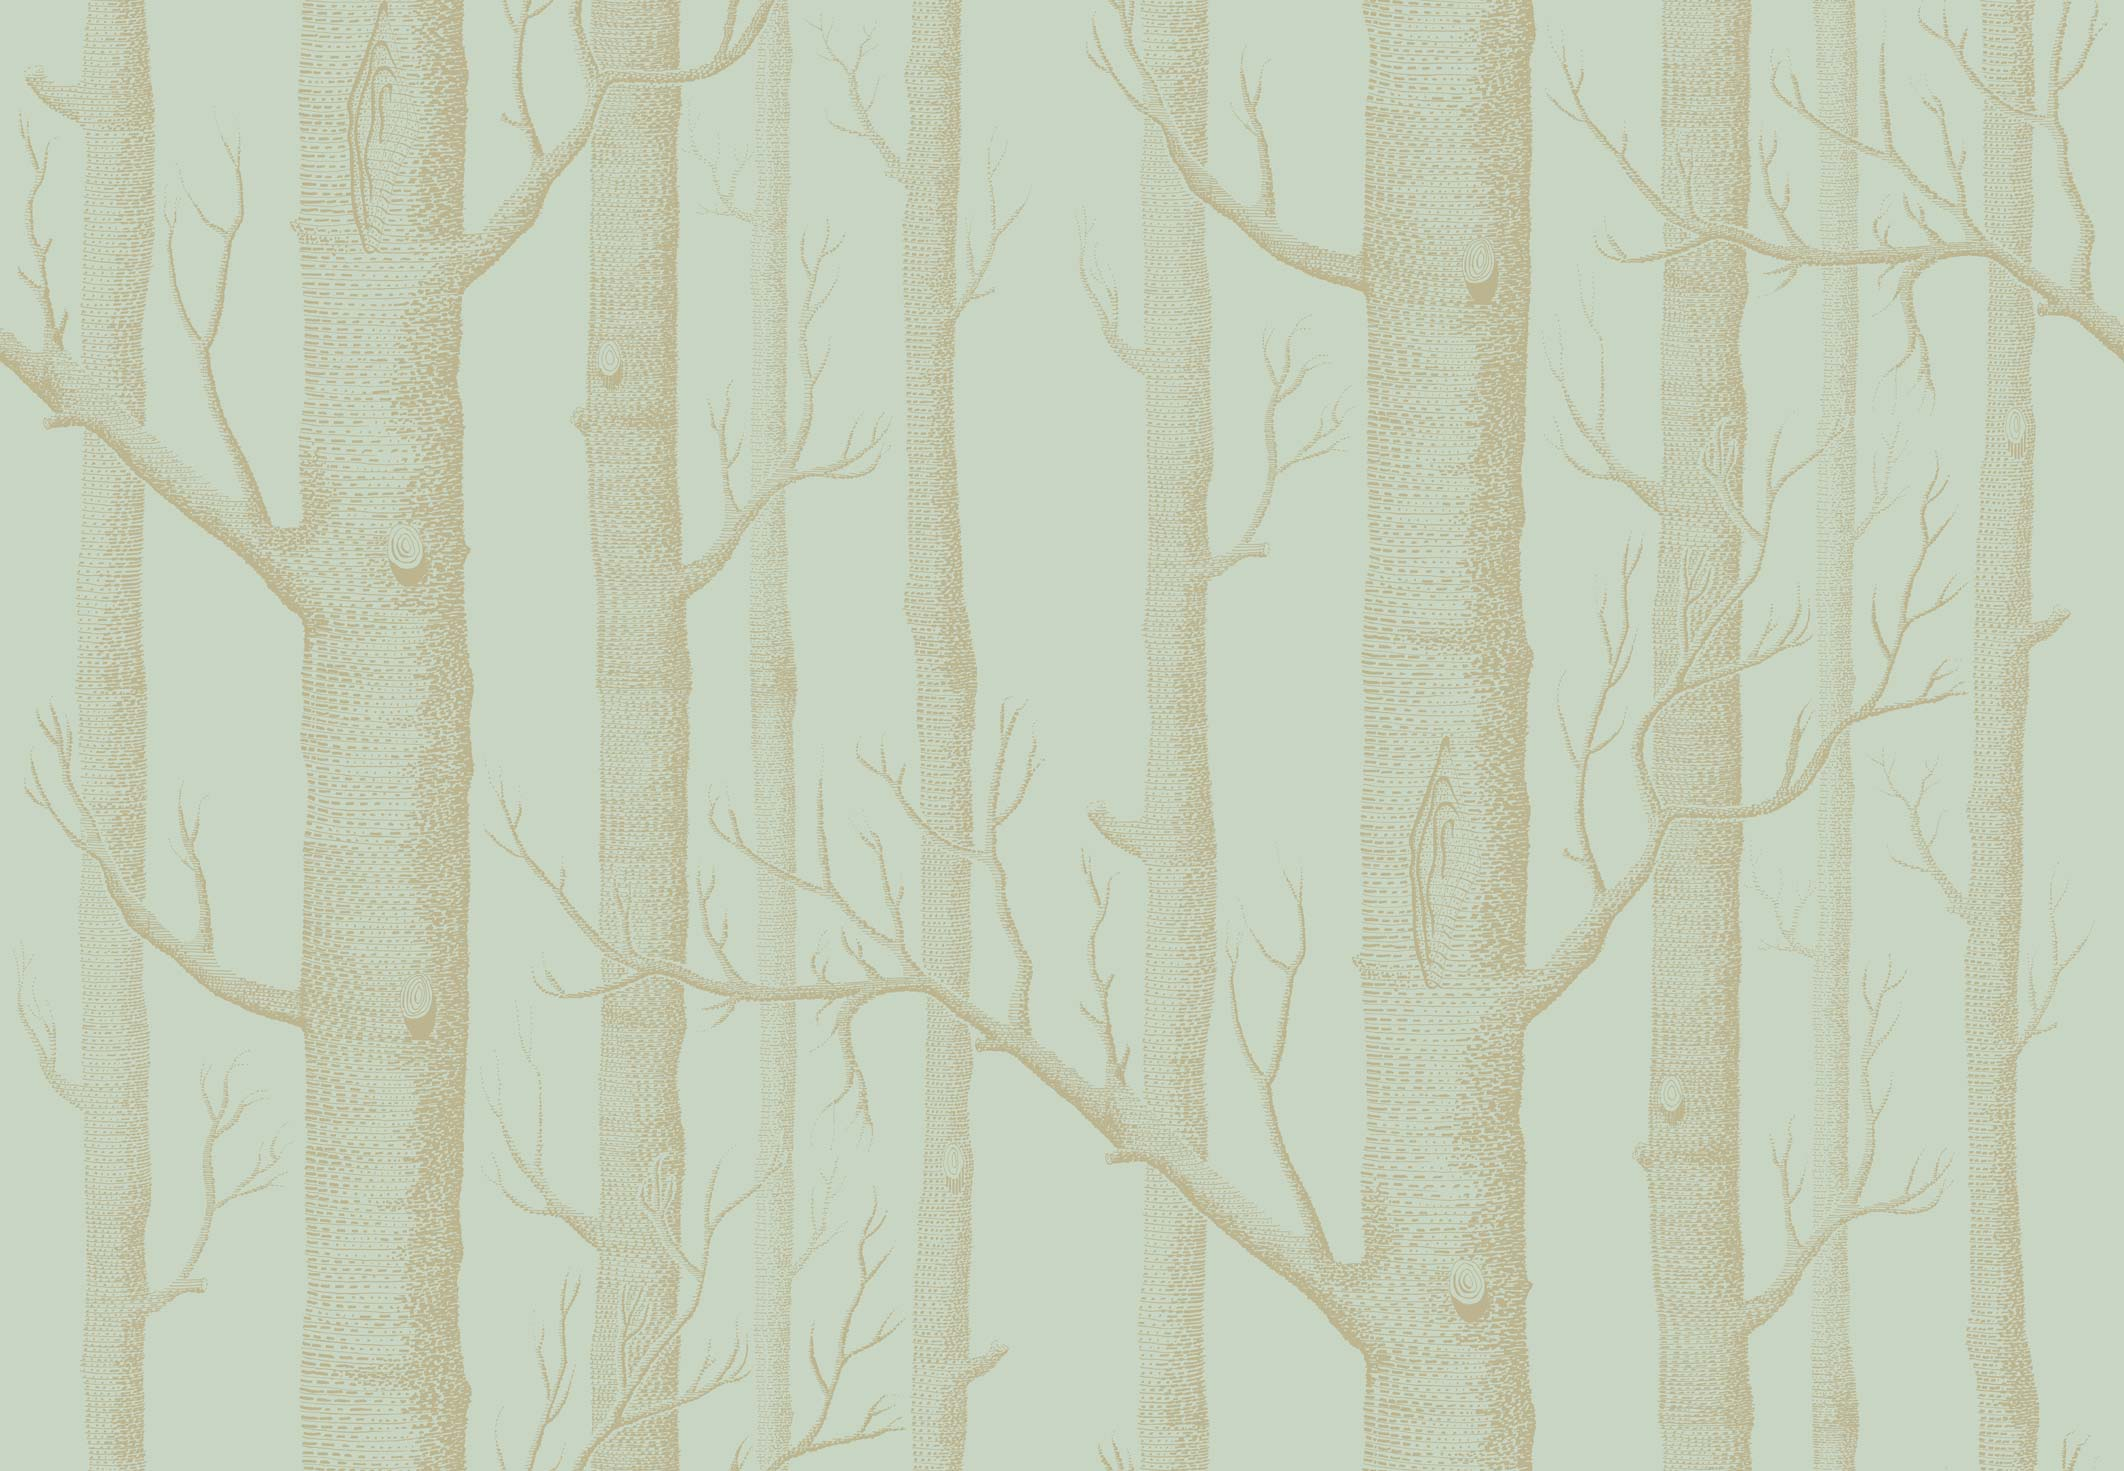 Cole And Son Woods cole & son - whimsical - woods - 103/5023